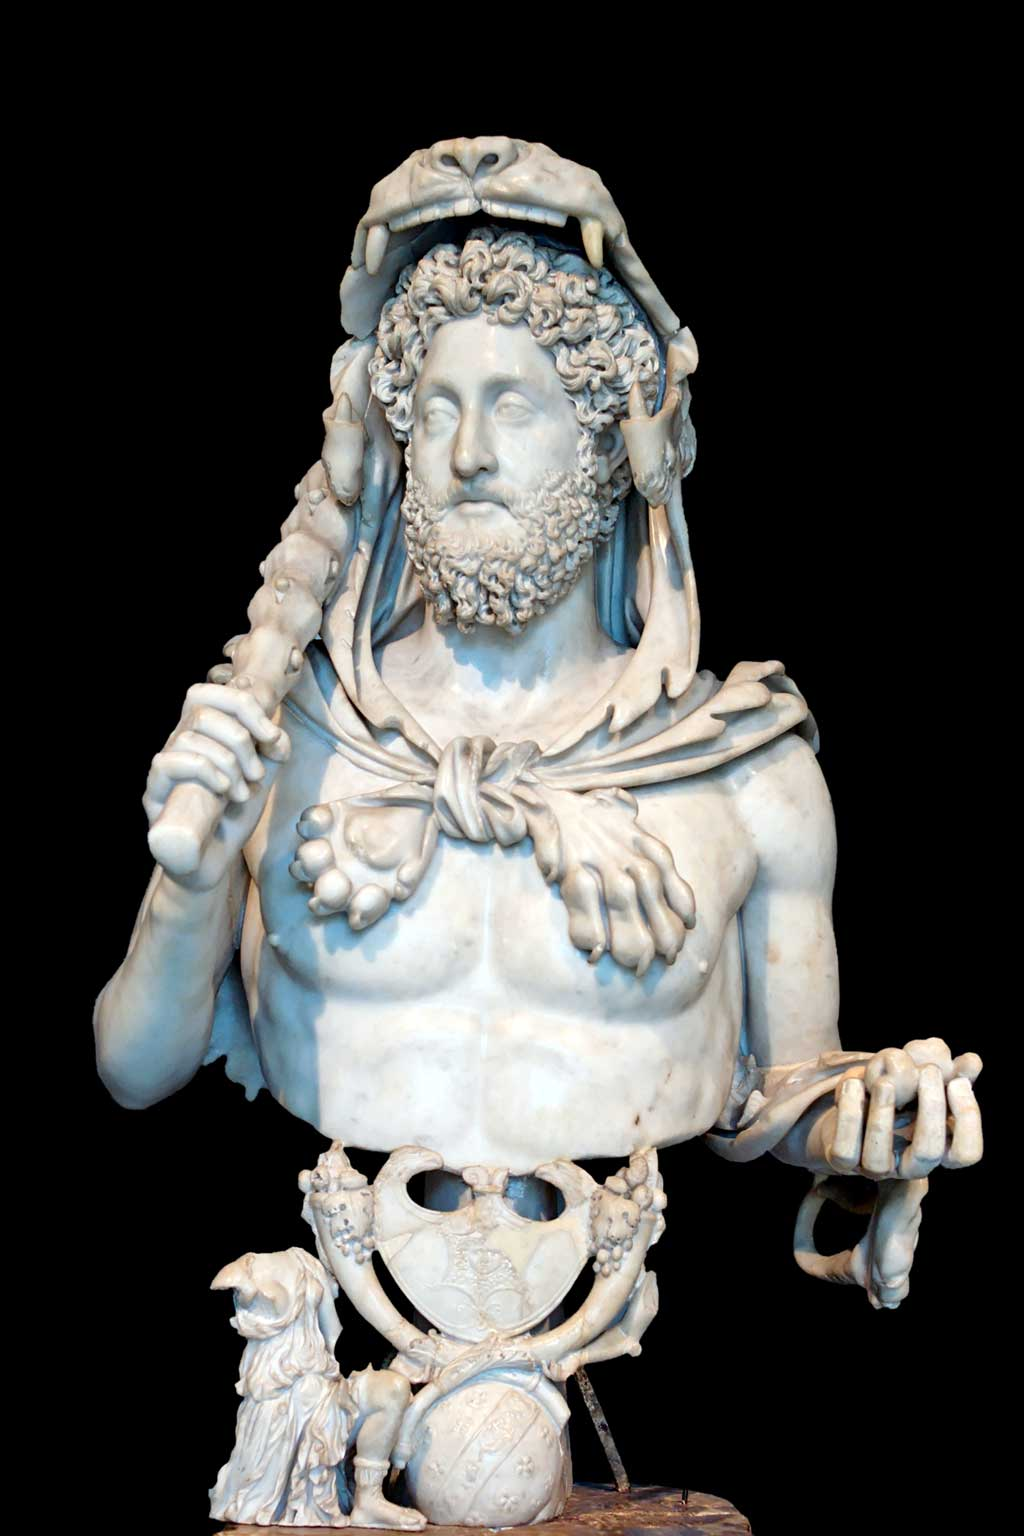 This is a bust of Commodous in which the bearded emperor wears lion headdress emblematic of his belief that he was a reincarnation of Hercules.